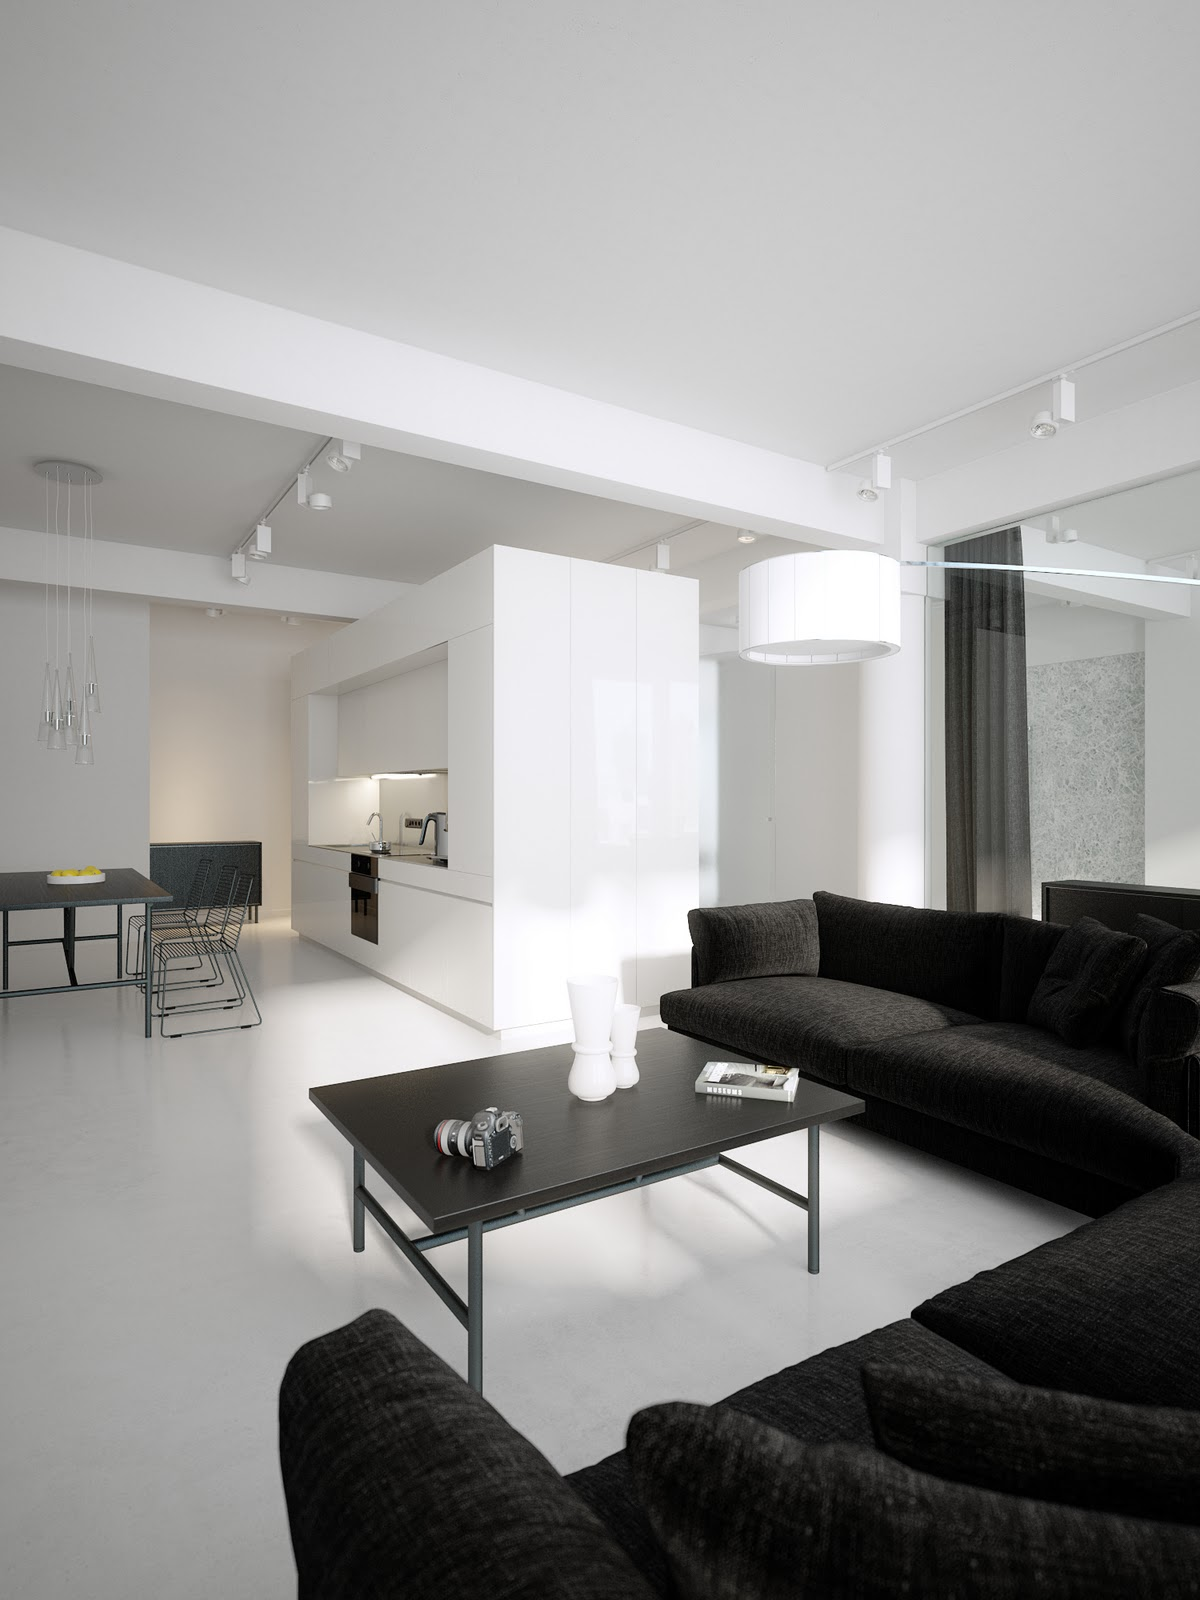 Minimalist Black and White Lofts